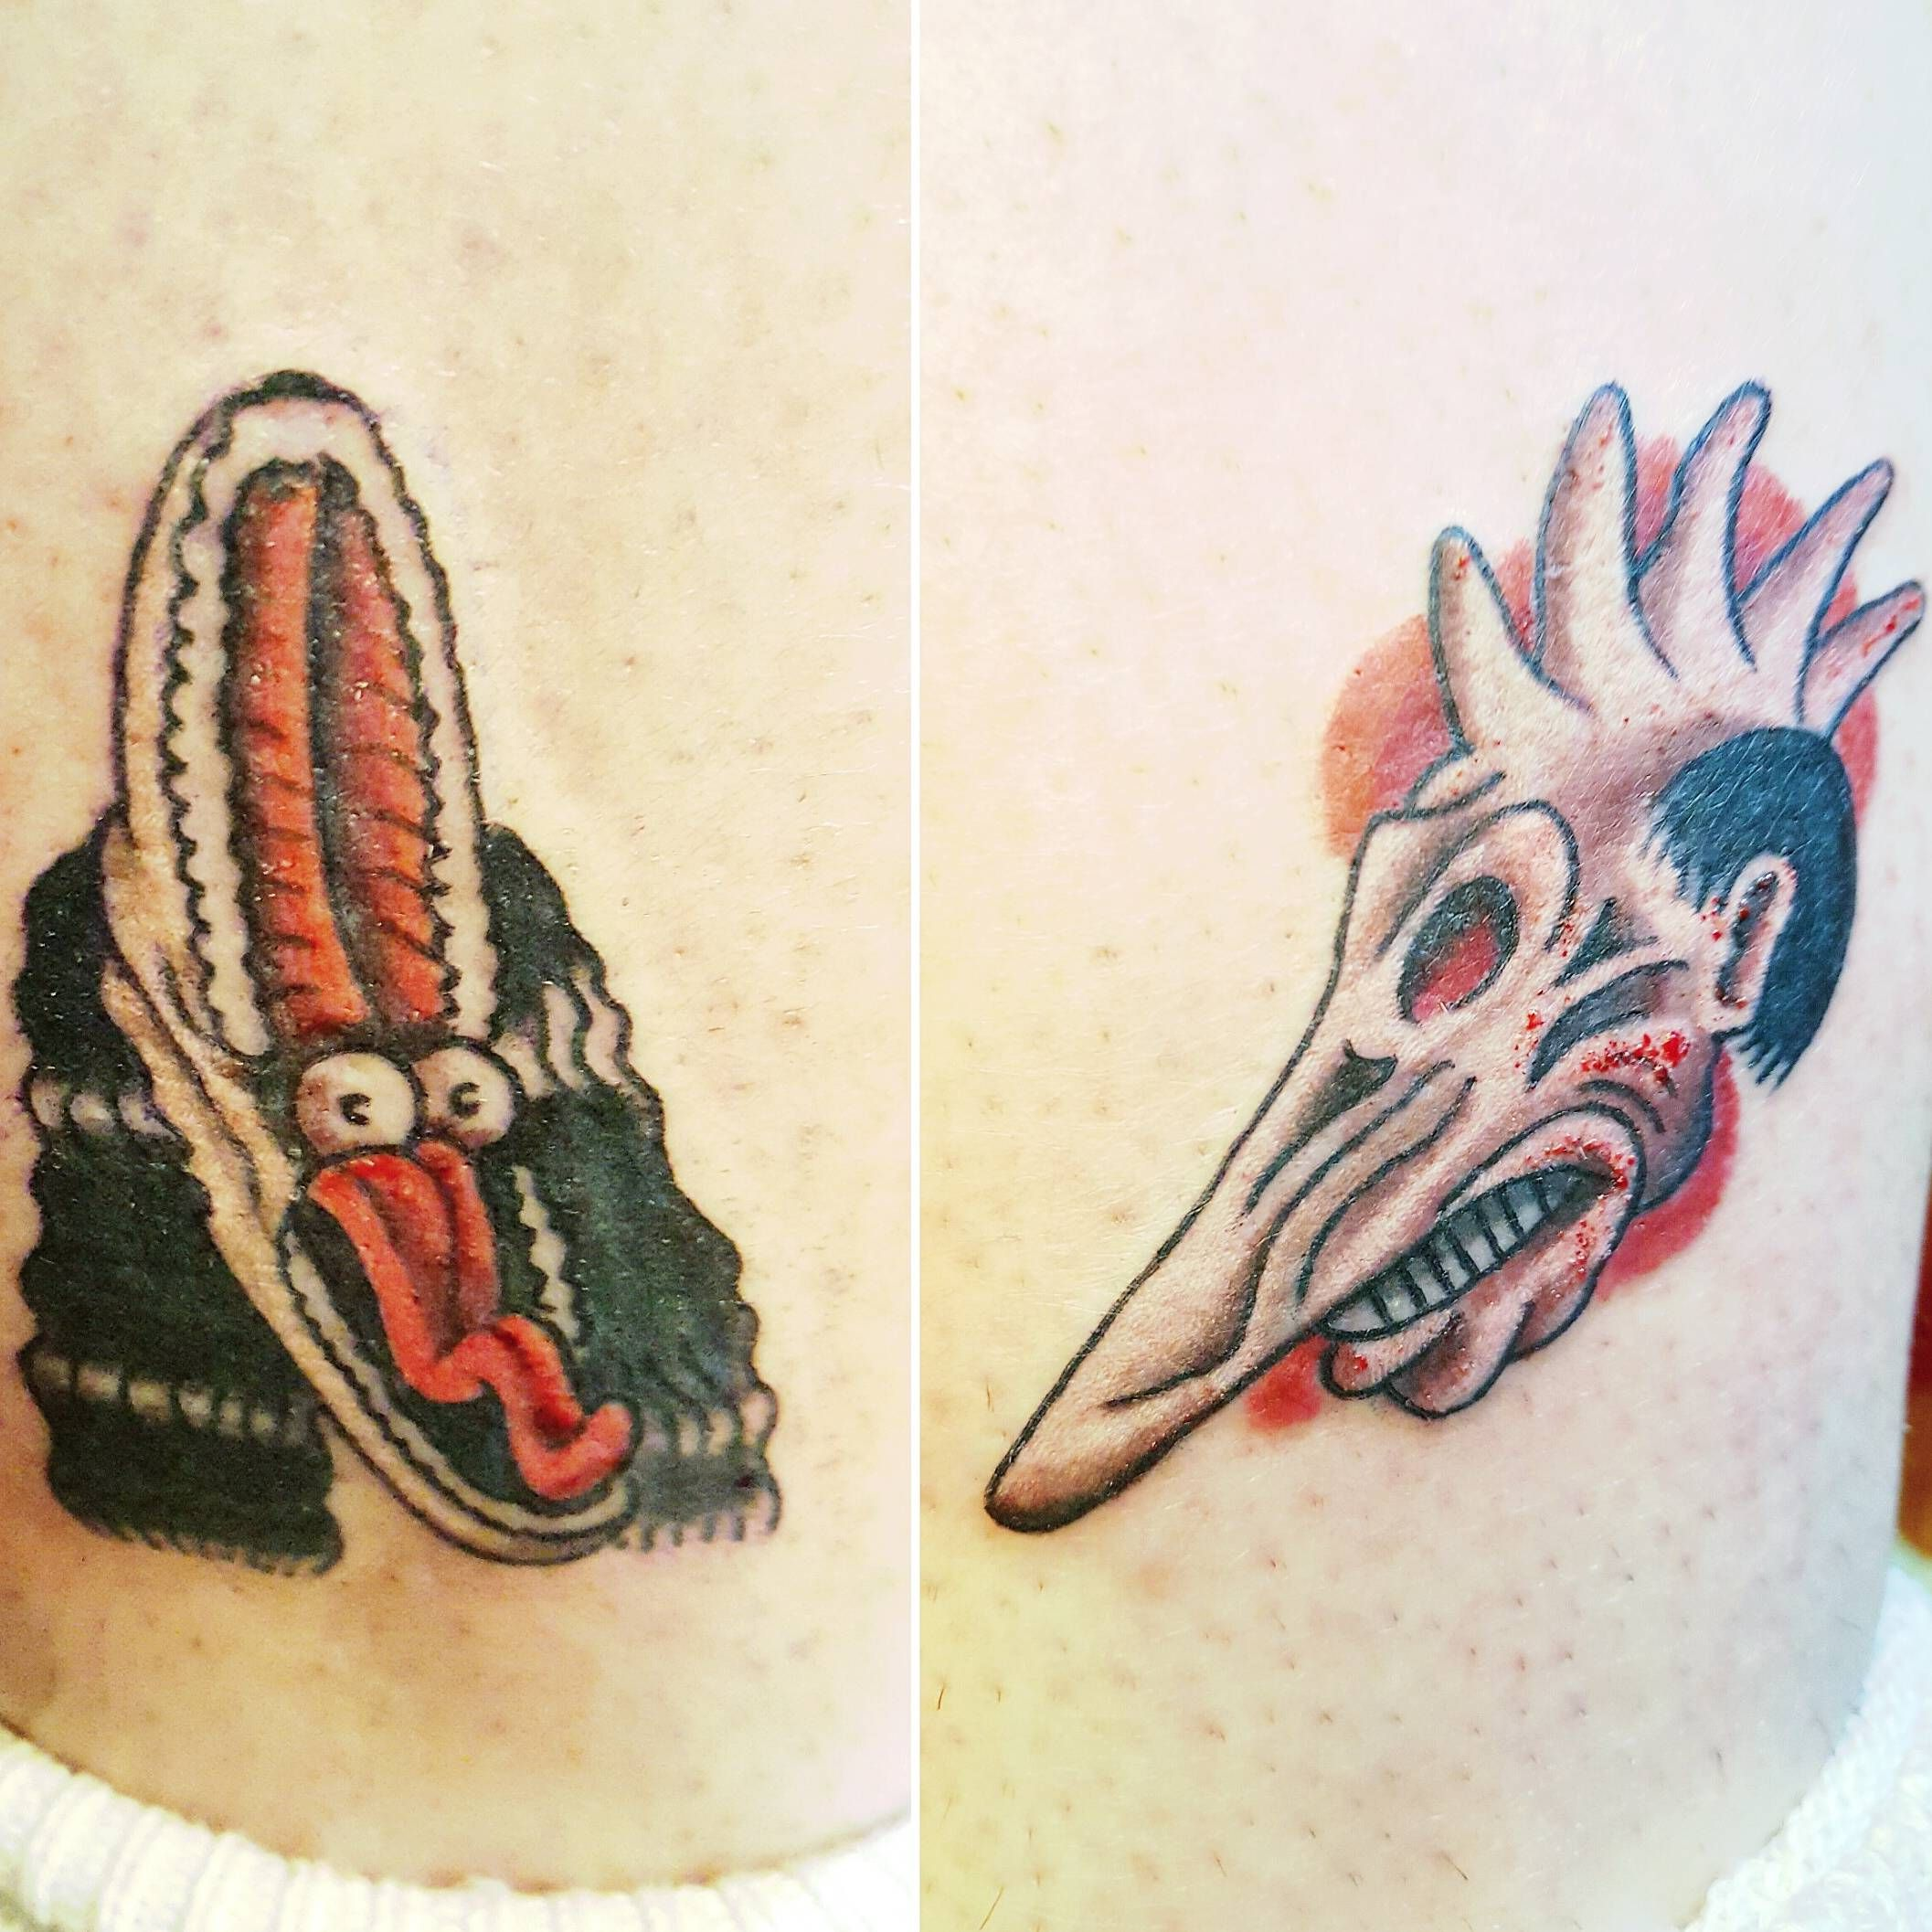 """adam maitland and barbara maitland's """"spooky faces"""" from beetlejuice by dark horse tattoos. done at seattle's crypticon 2016; one on each outer calf."""